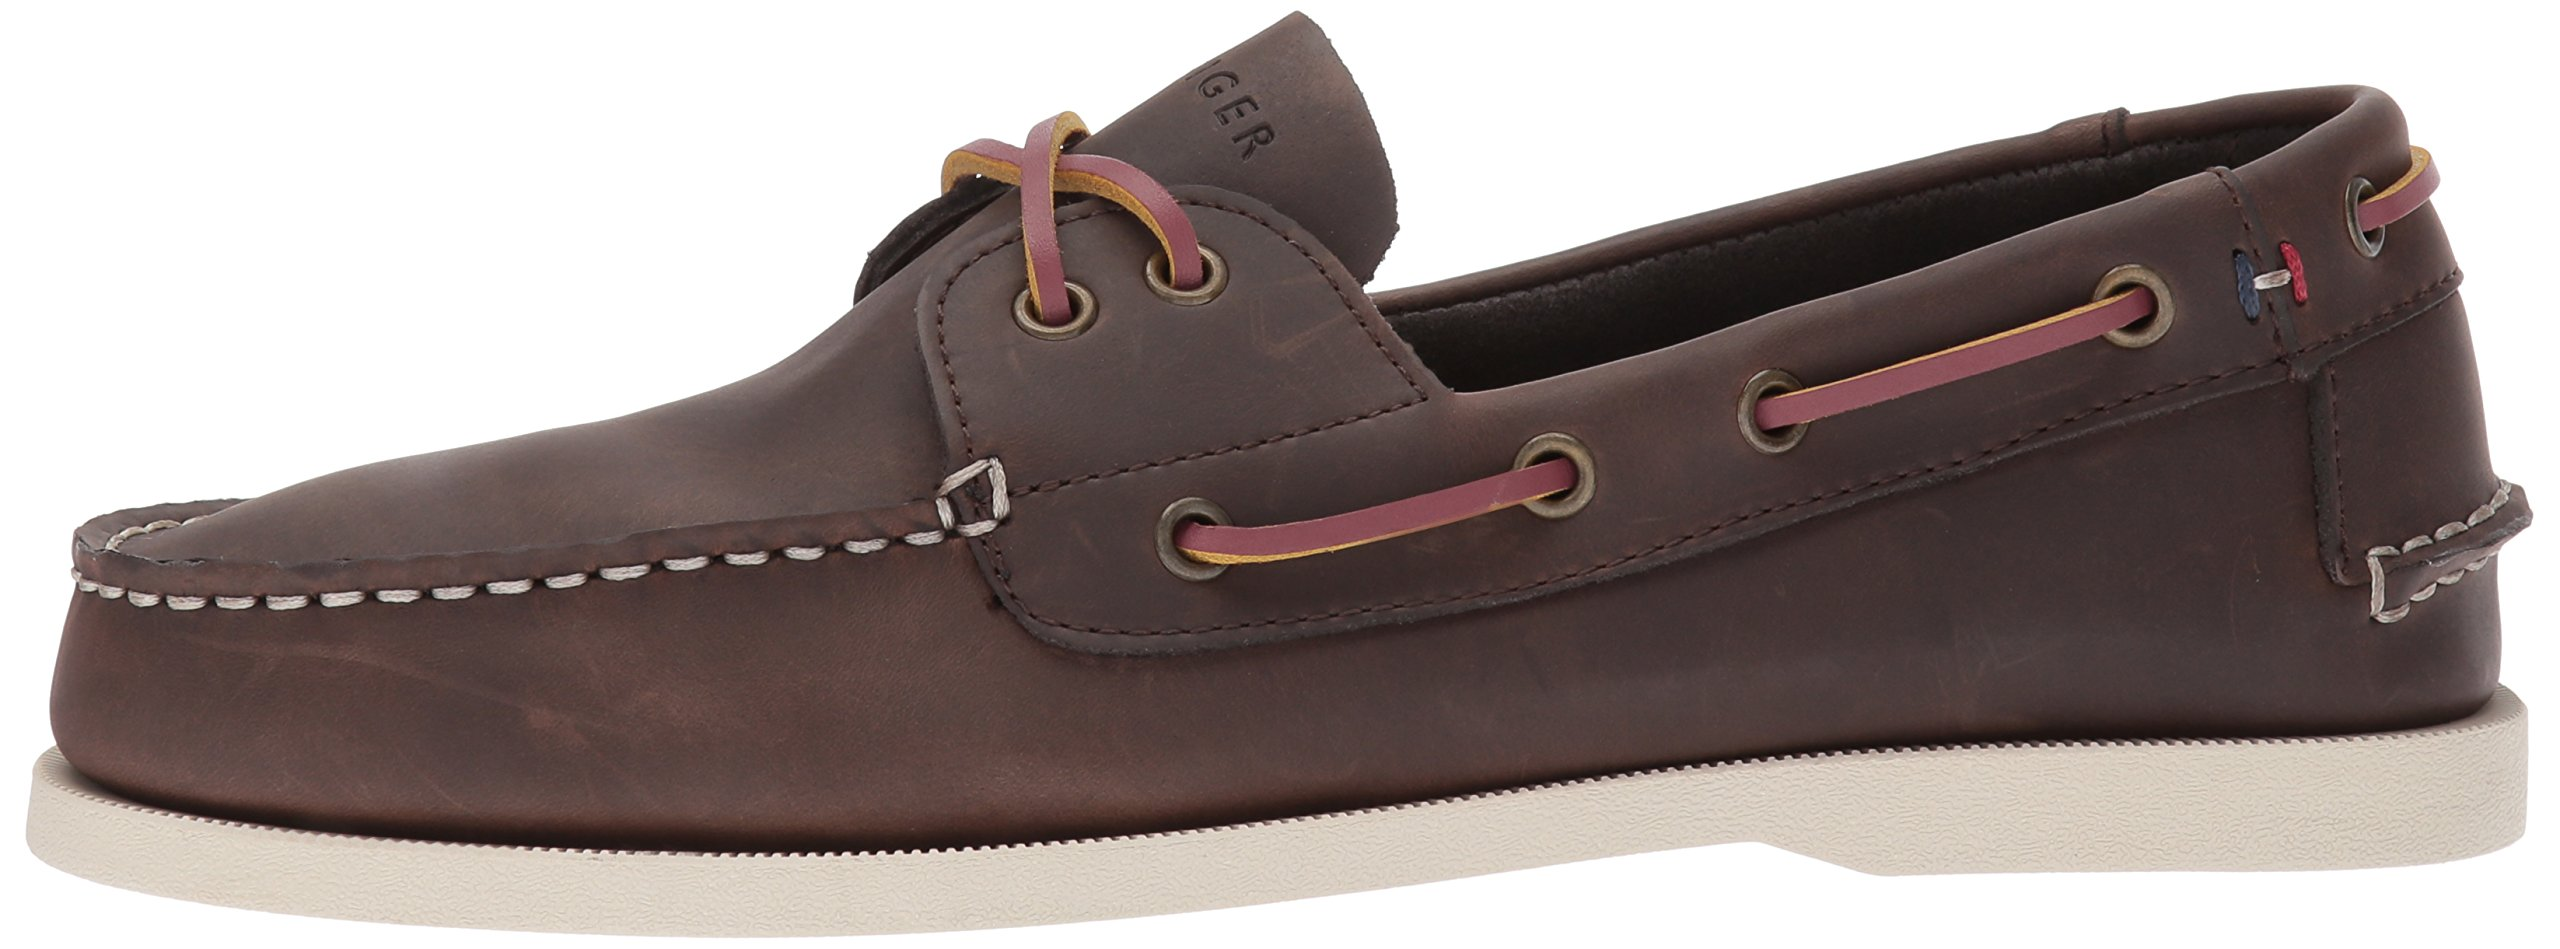 Tommy Hilfiger Men's Bowman Boat shoe,Coffee Bean,8.5 M US by Tommy Hilfiger (Image #5)